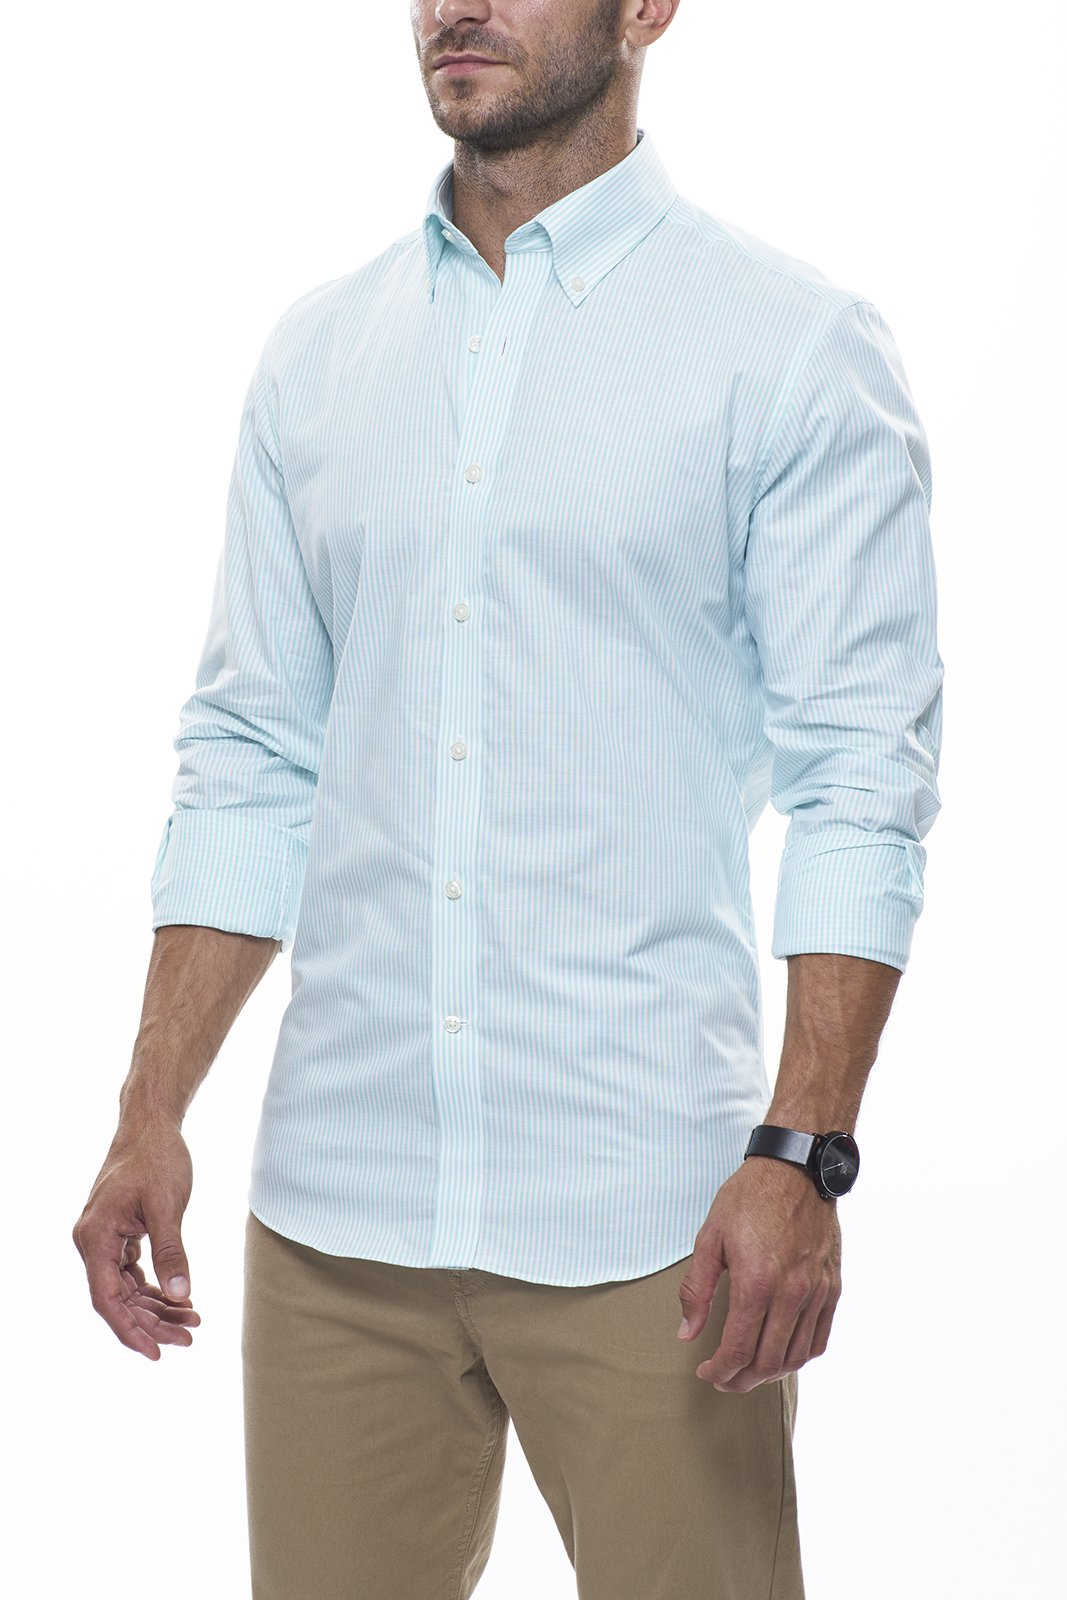 Seafoam Striped Oxford: Semi-Spread Collar, Barrel Cuff